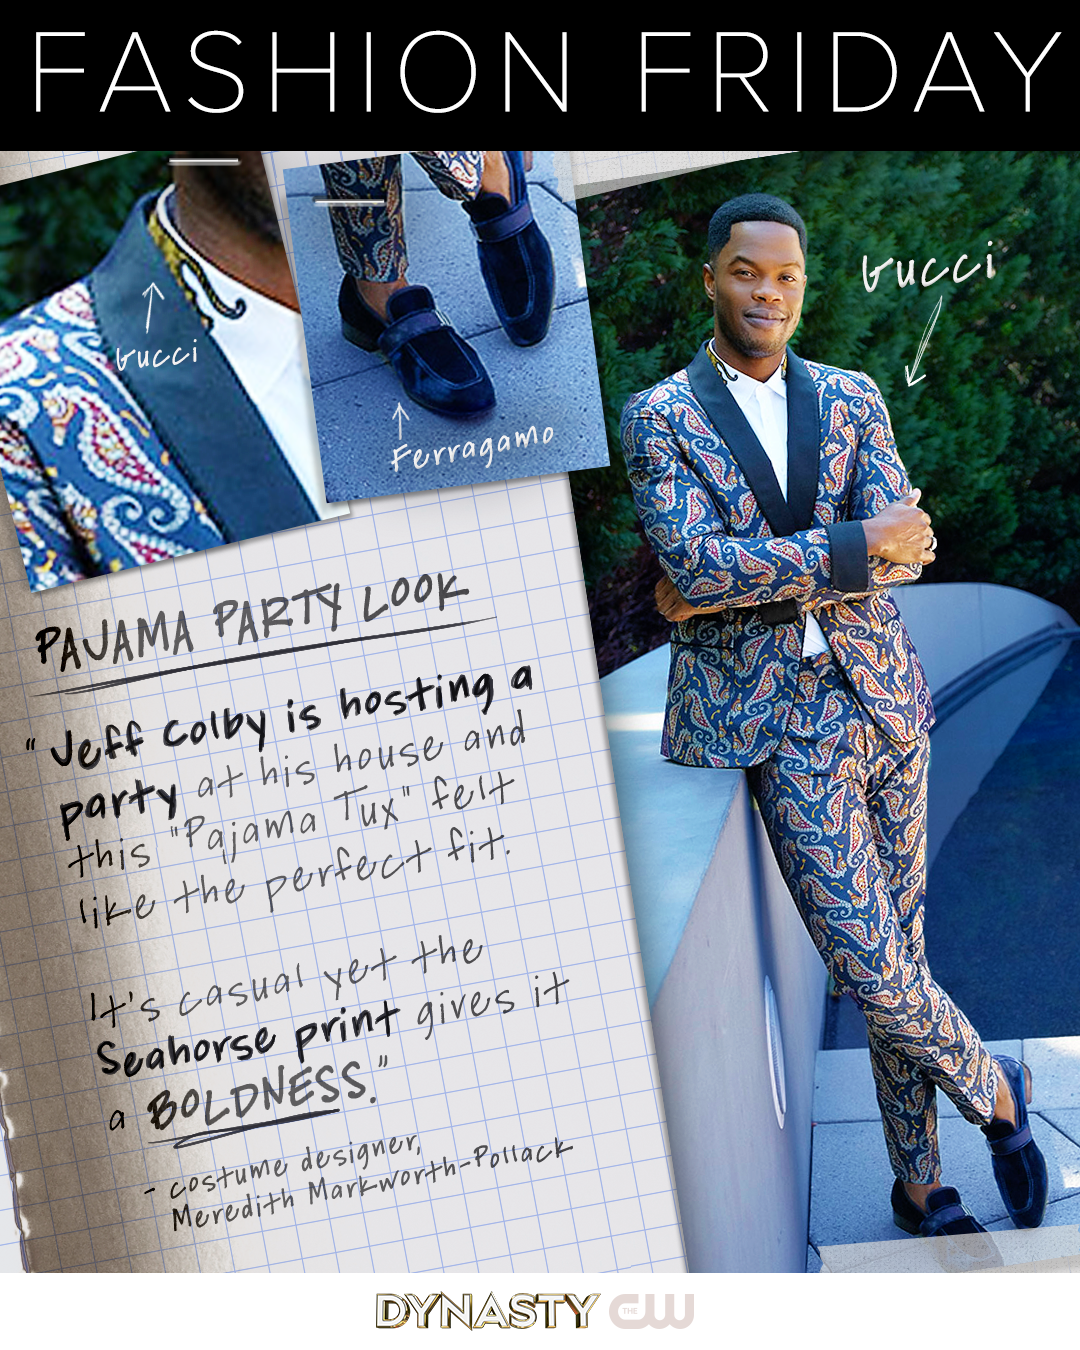 Jeff Colby Is Hosting A Party At His House And This Pajama Tux By Gucci Felt Like The Perfect Fit It S Jeff Colby Fashion Inspiration Design Fashion Friday